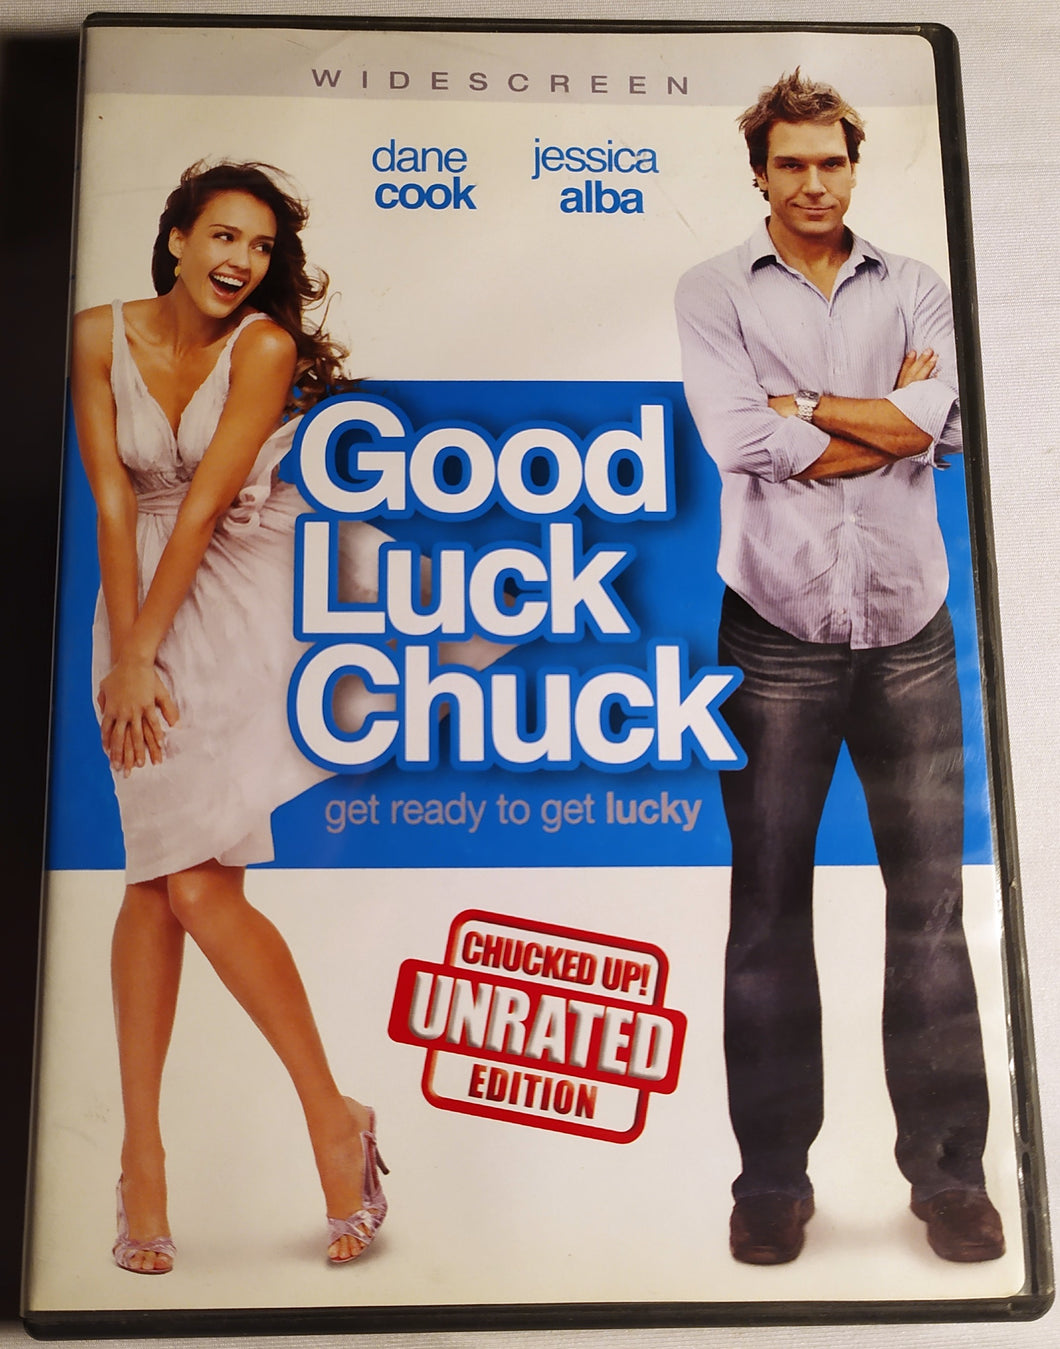 Good Luck Chuck - Chucked Up Unrated Edition